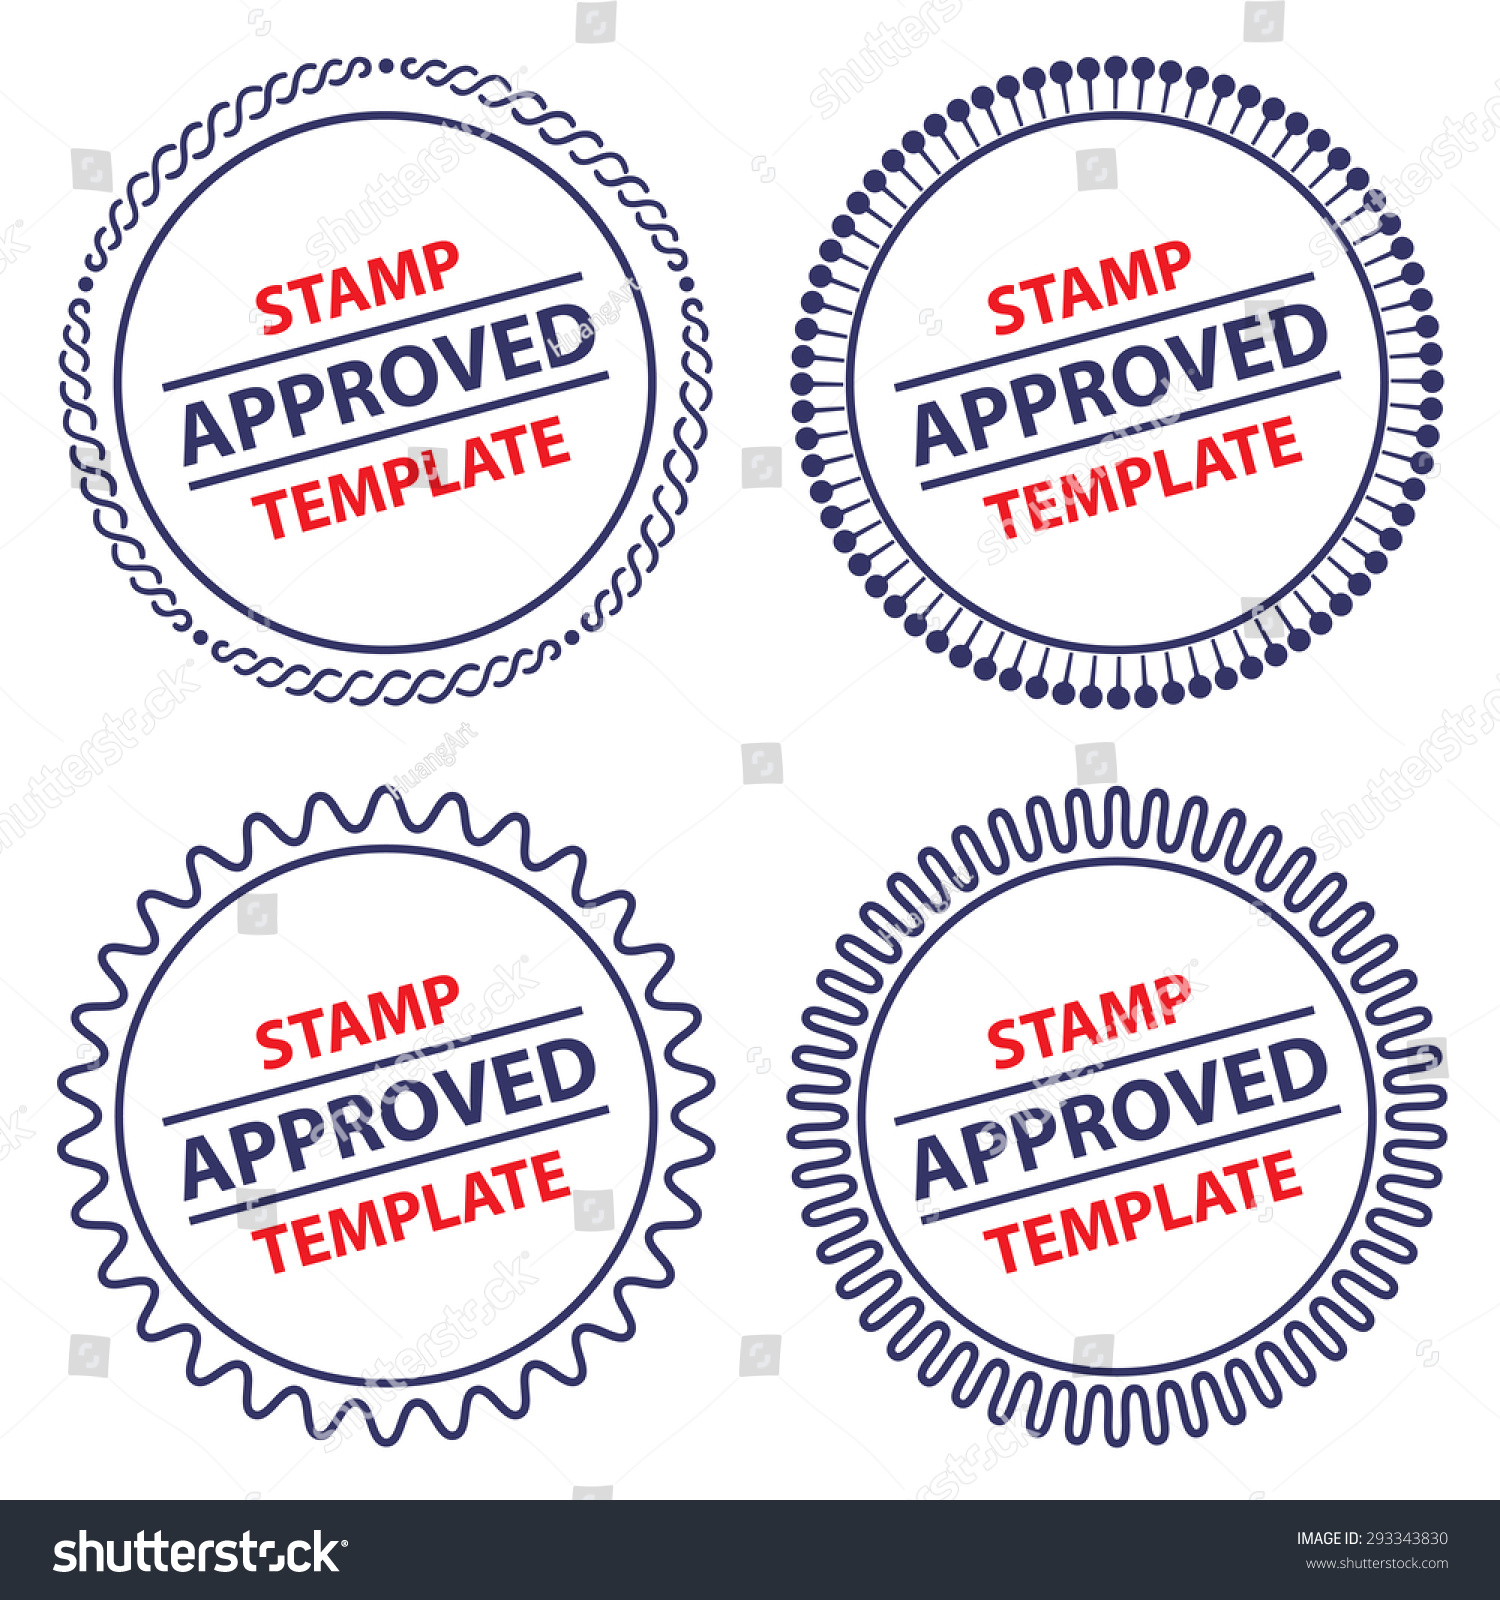 circle stamp template security design stock vector royalty free